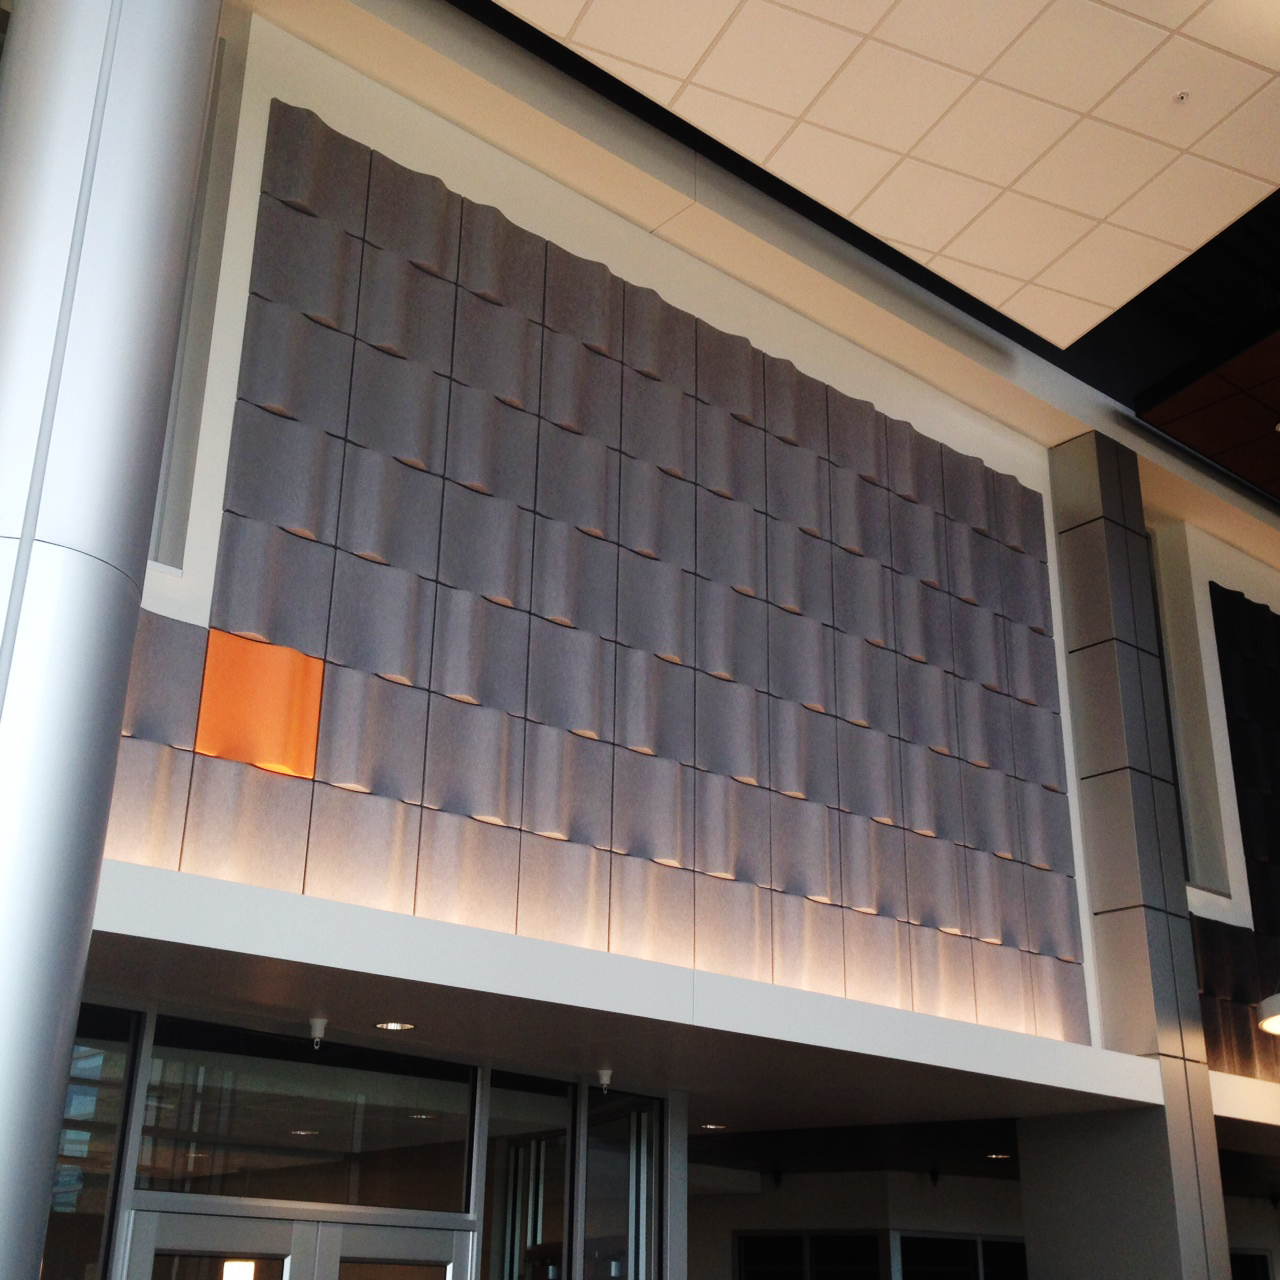 Ep-Wave-Tiles-402-151-Wall-Education-Hallway-Jackson-Community-College-2